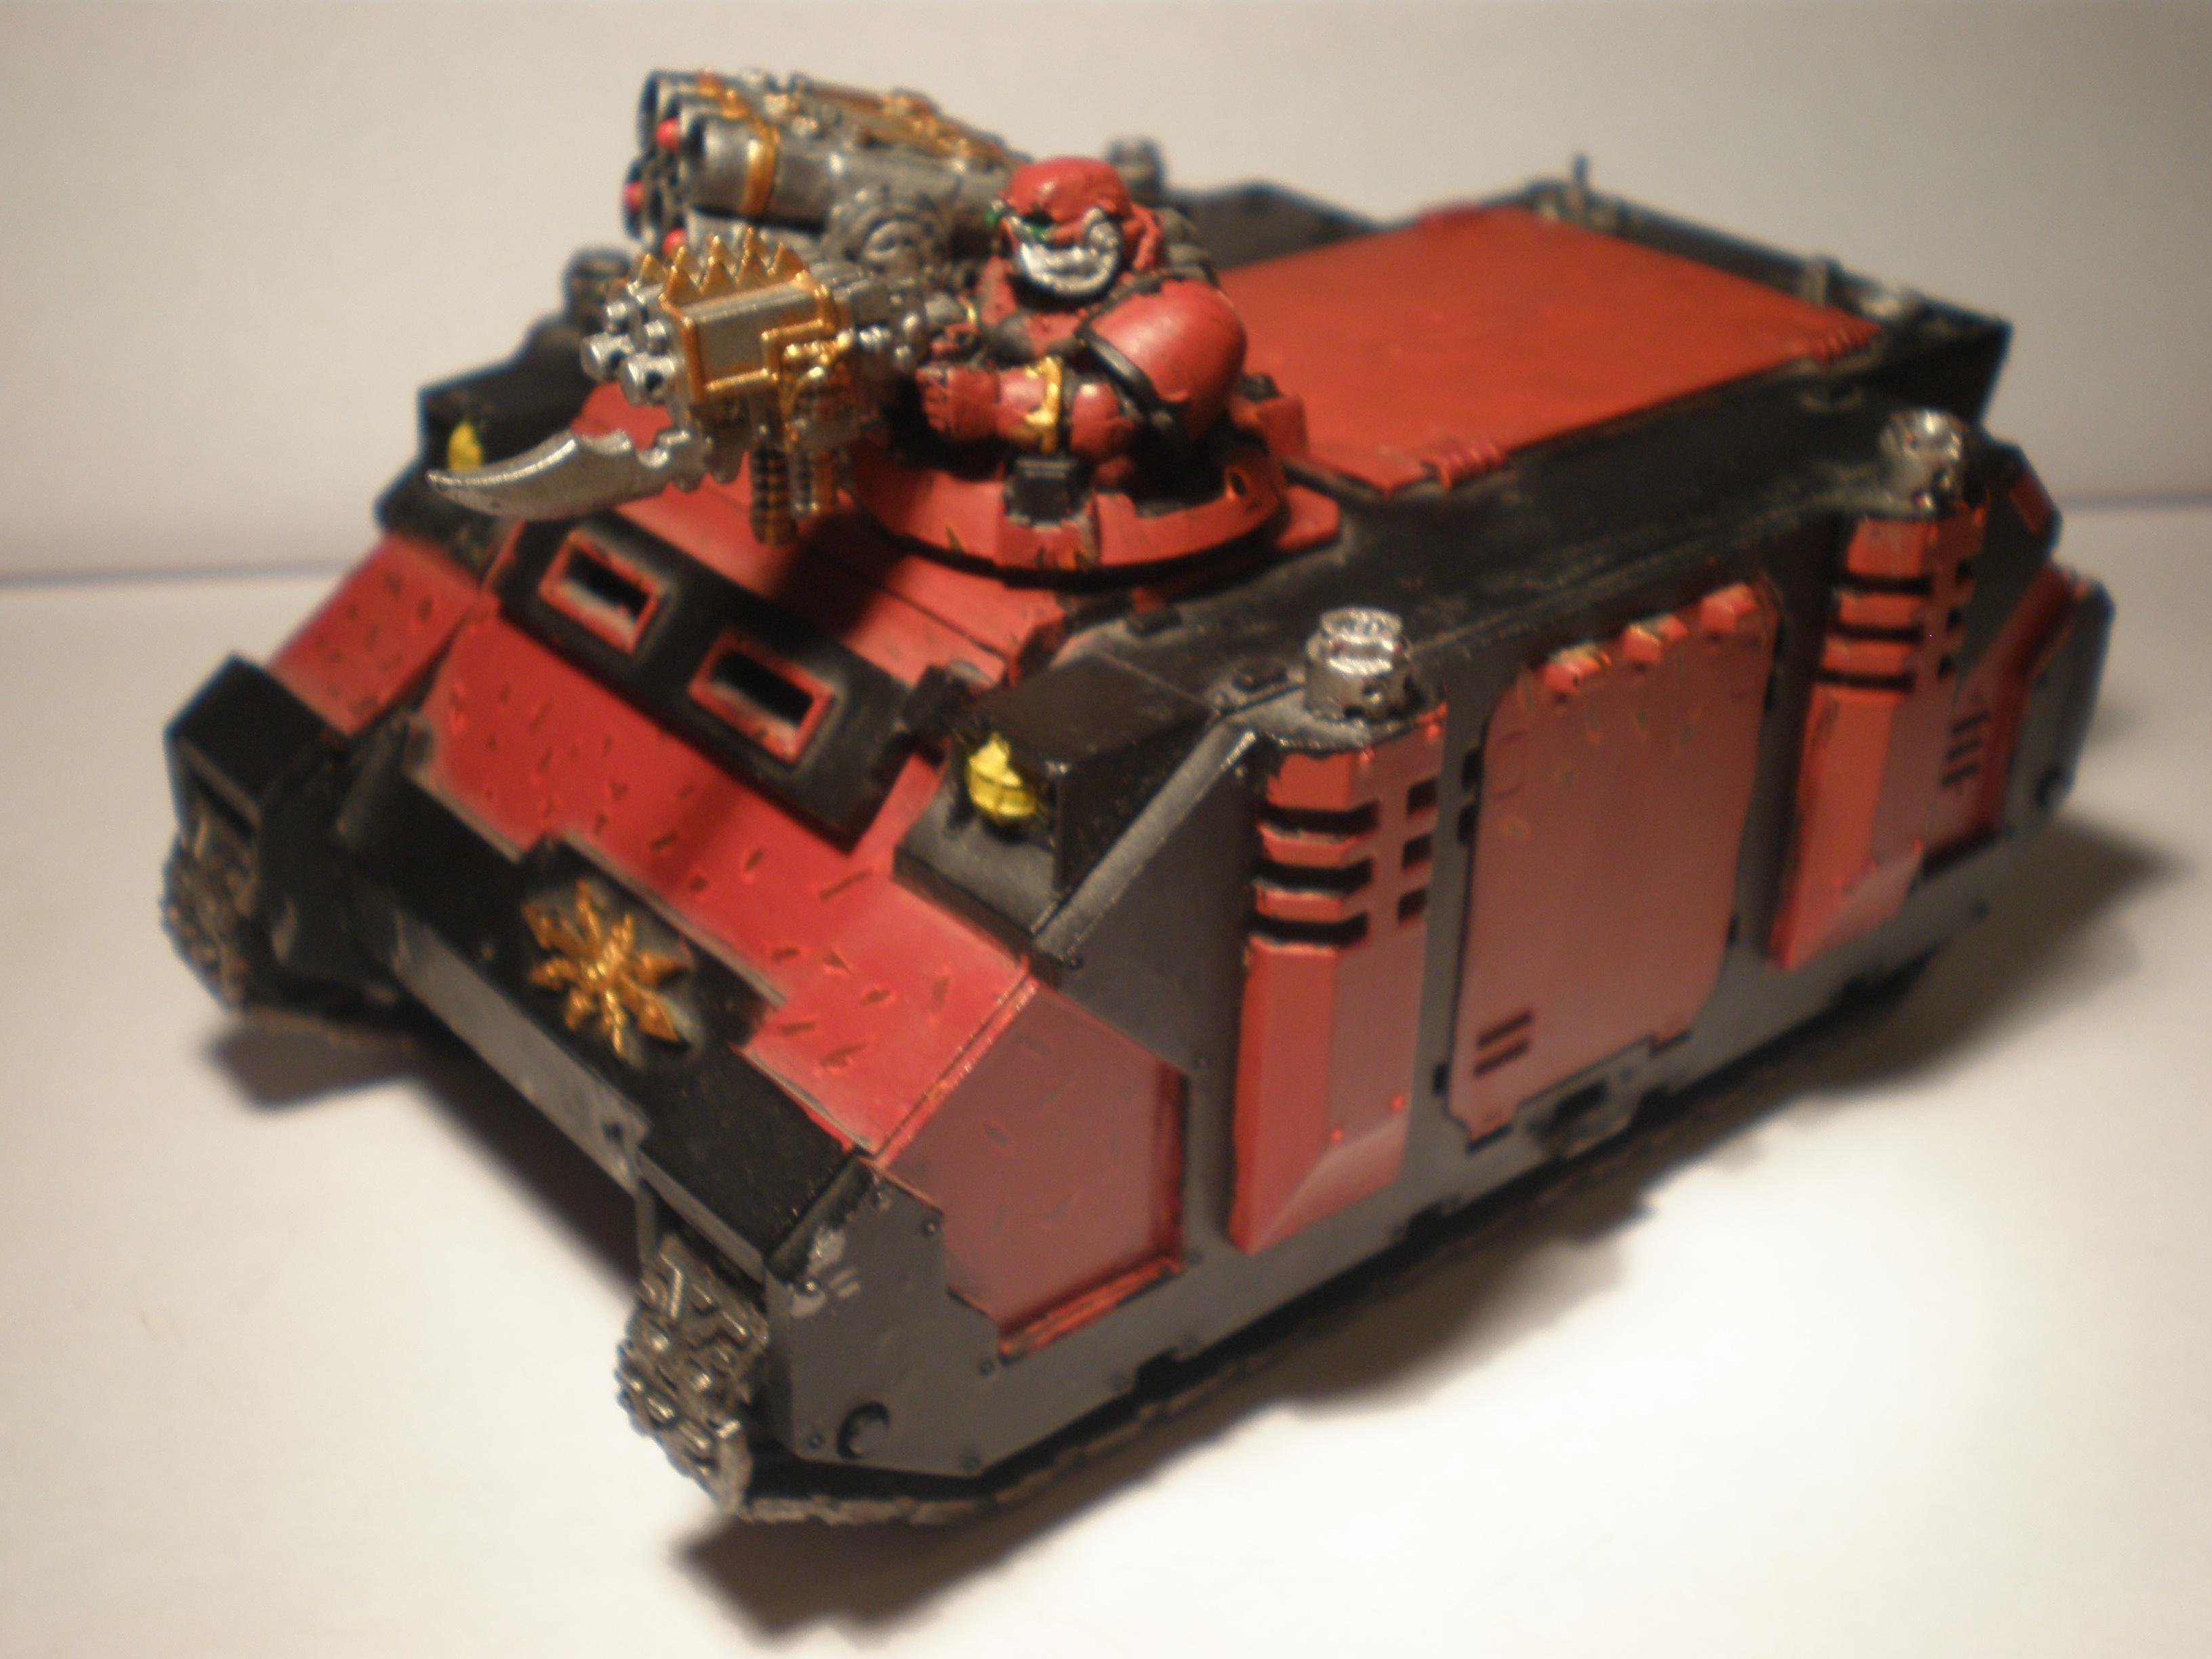 This is my first painted vehicle so it doesn't look to great